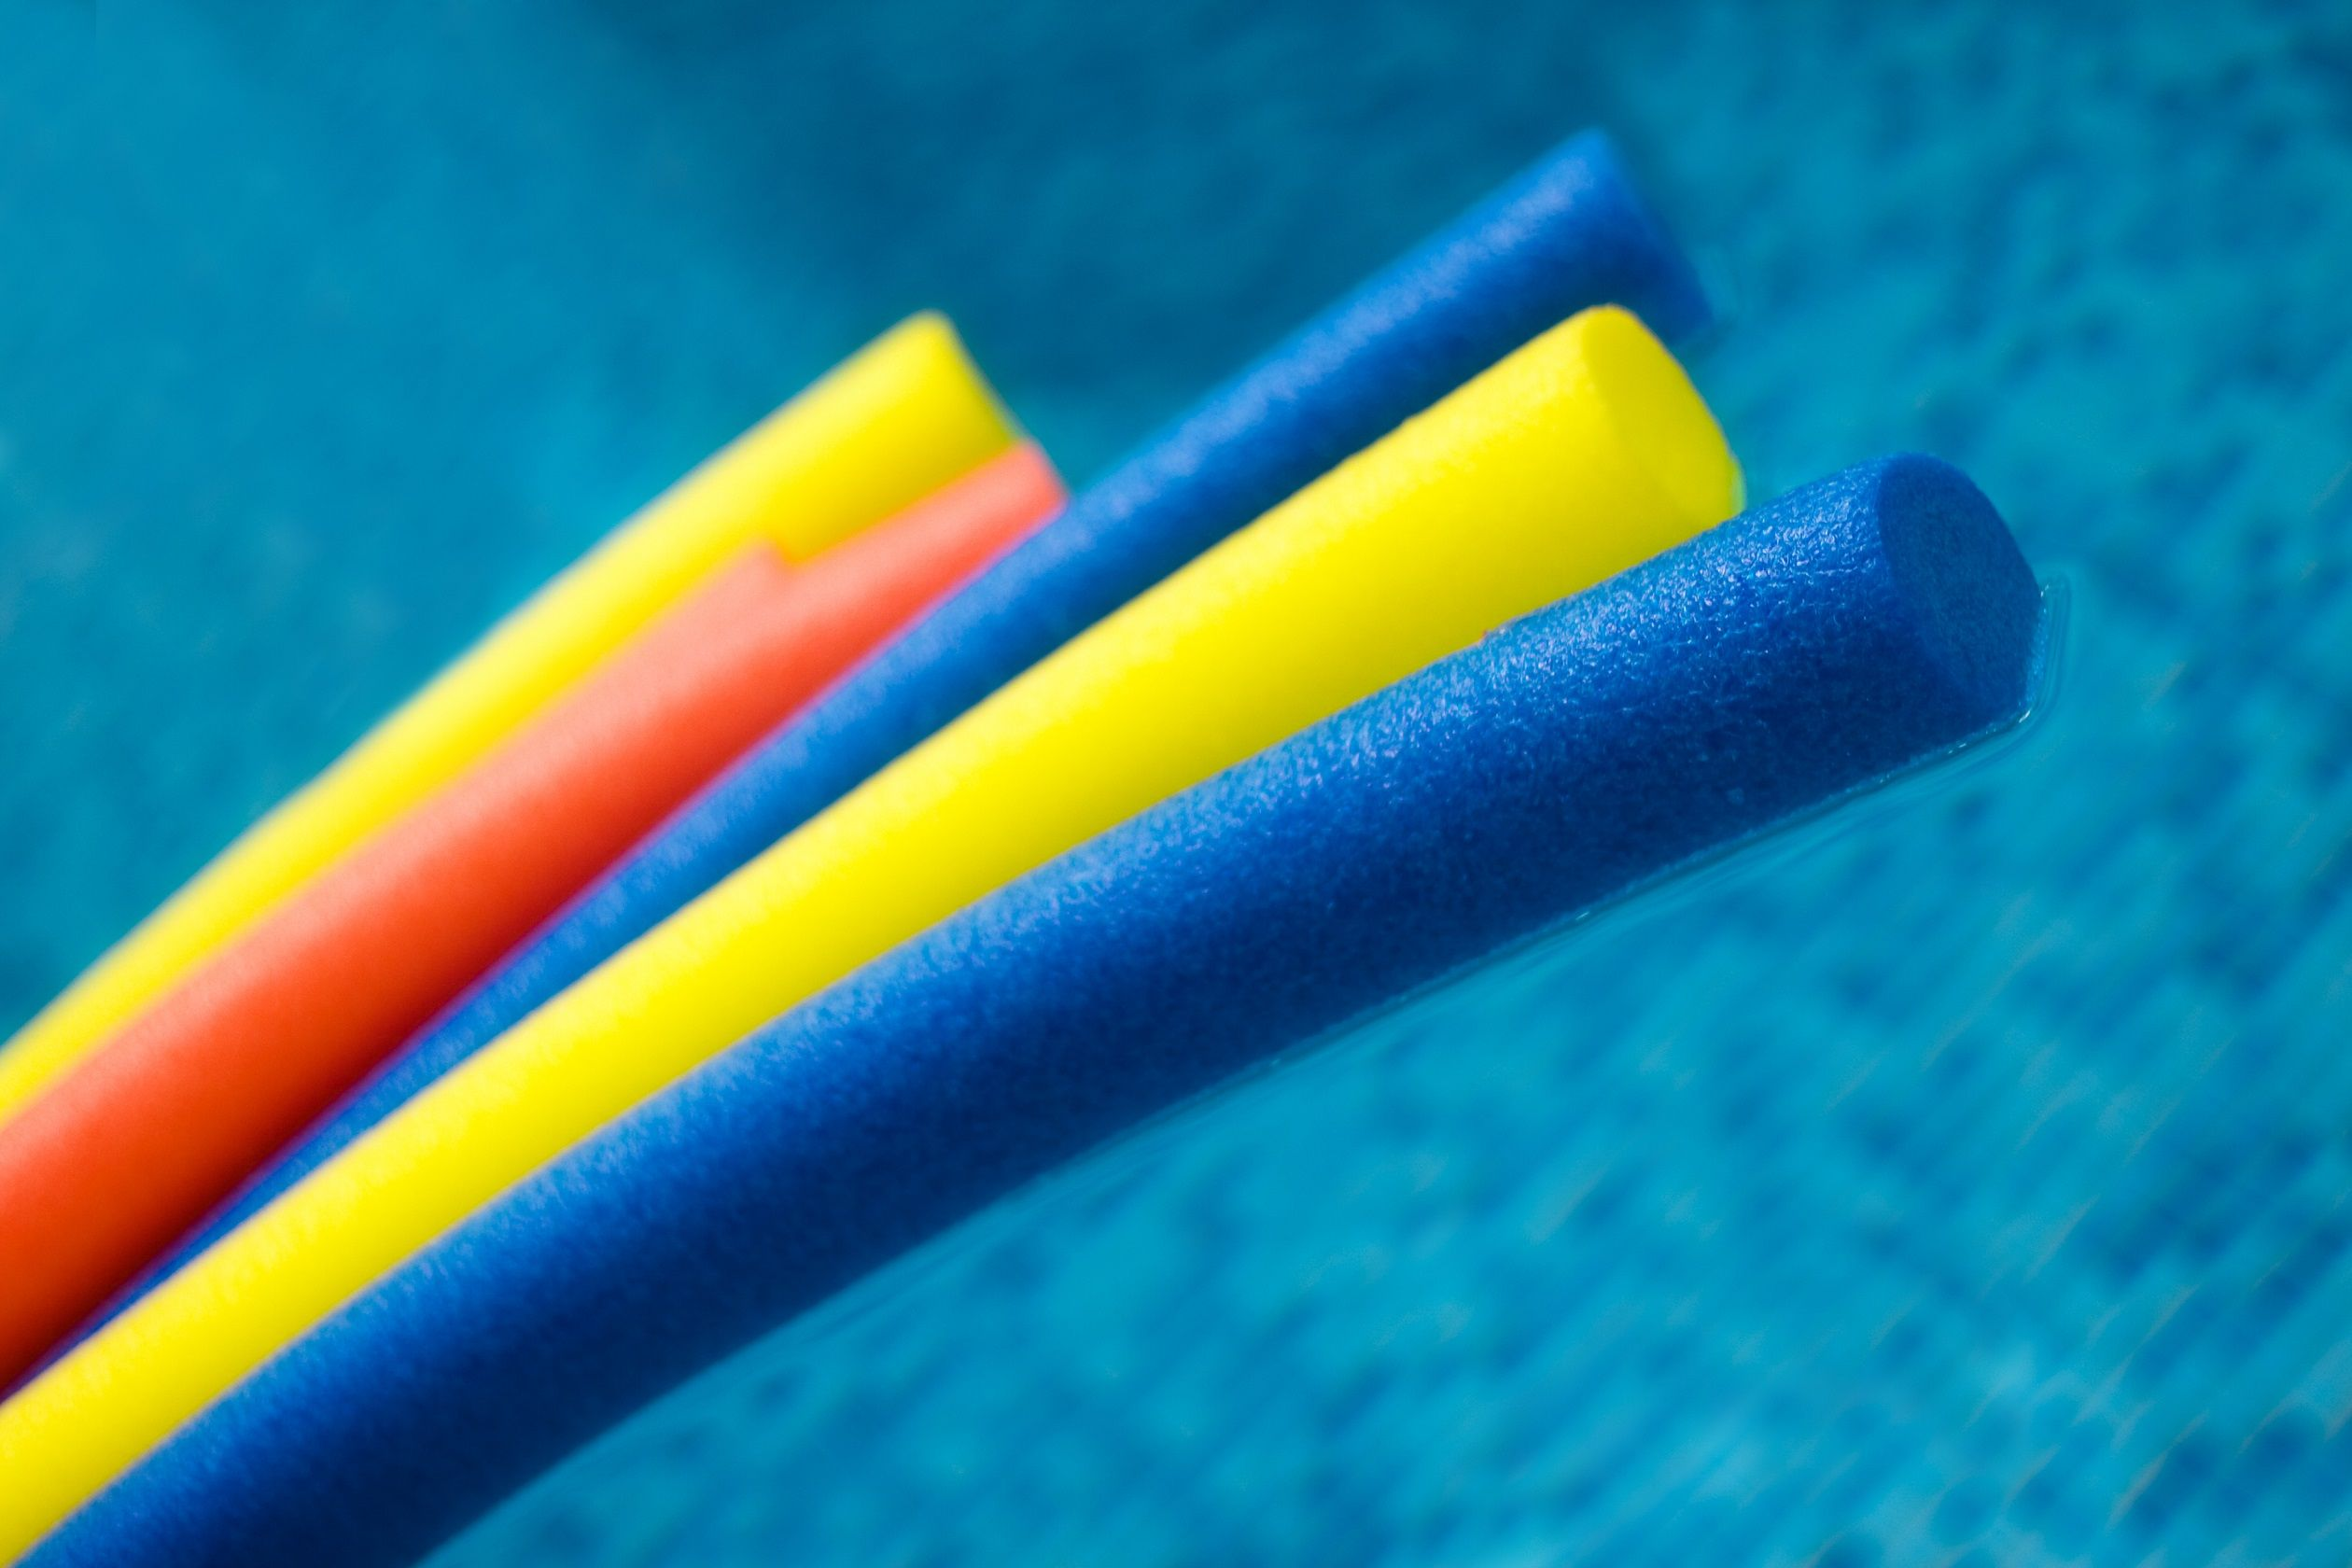 Pool noodles in water